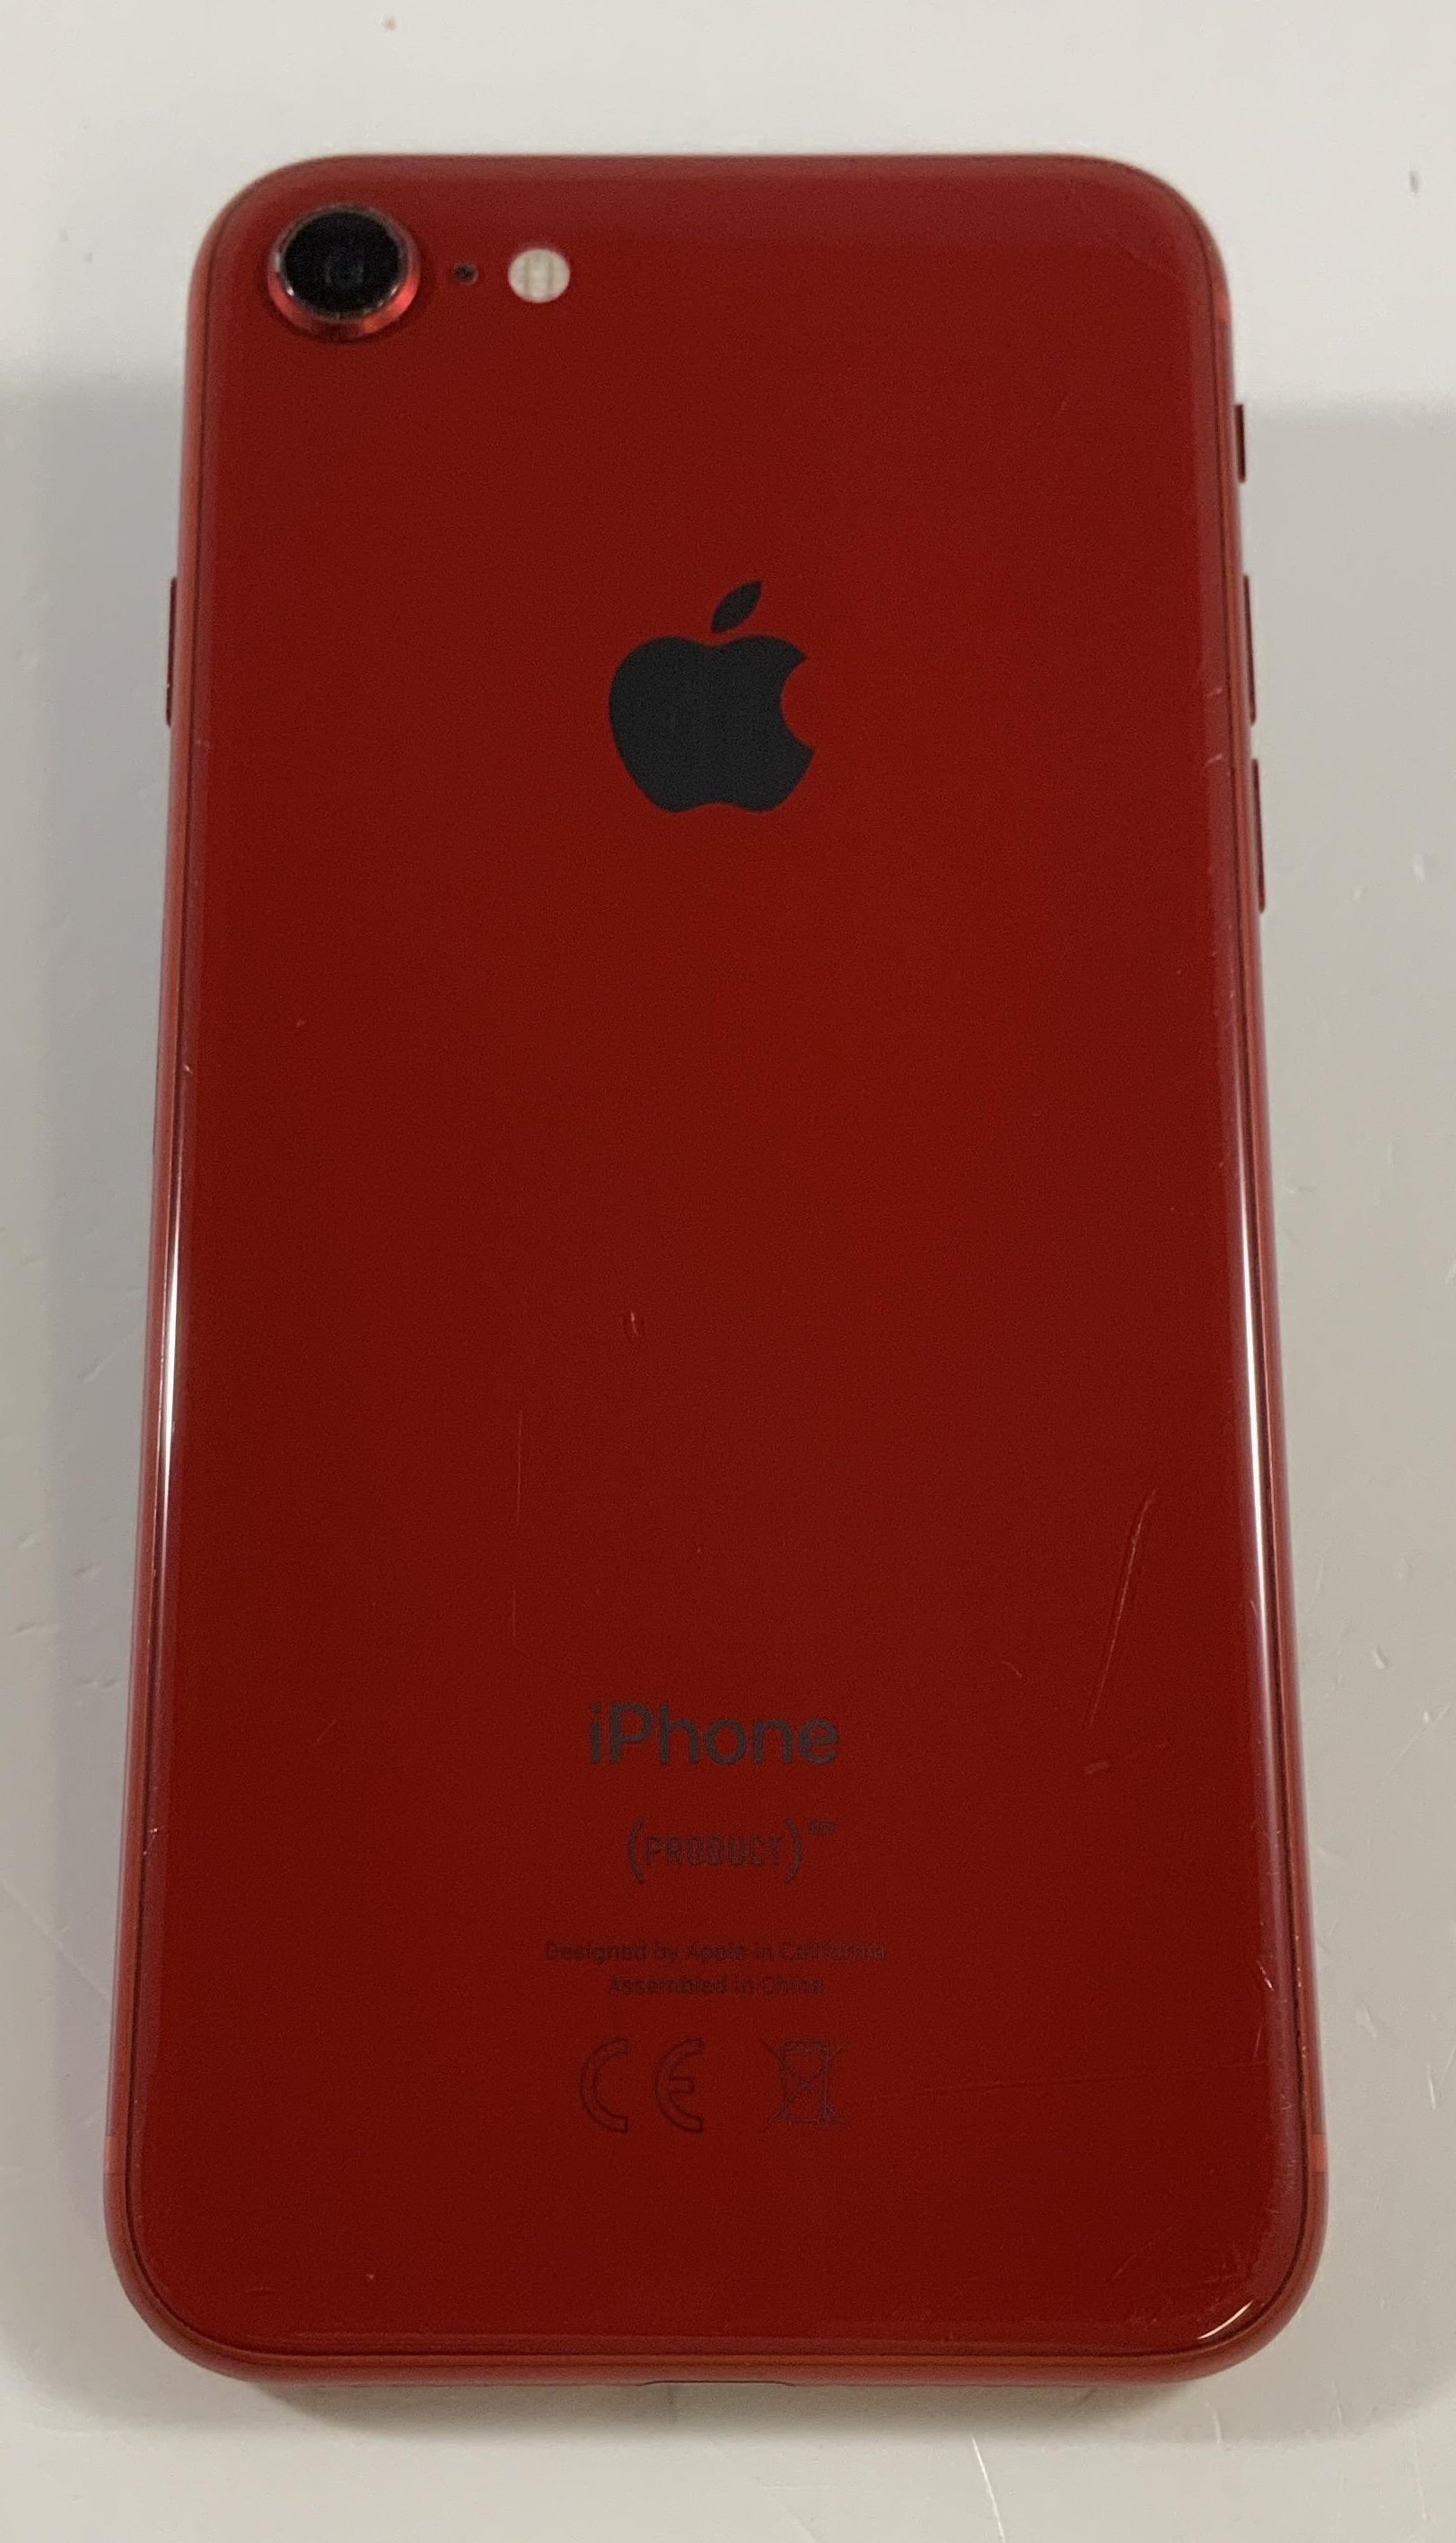 iPhone 8 64GB, 64GB, Red, imagen 2